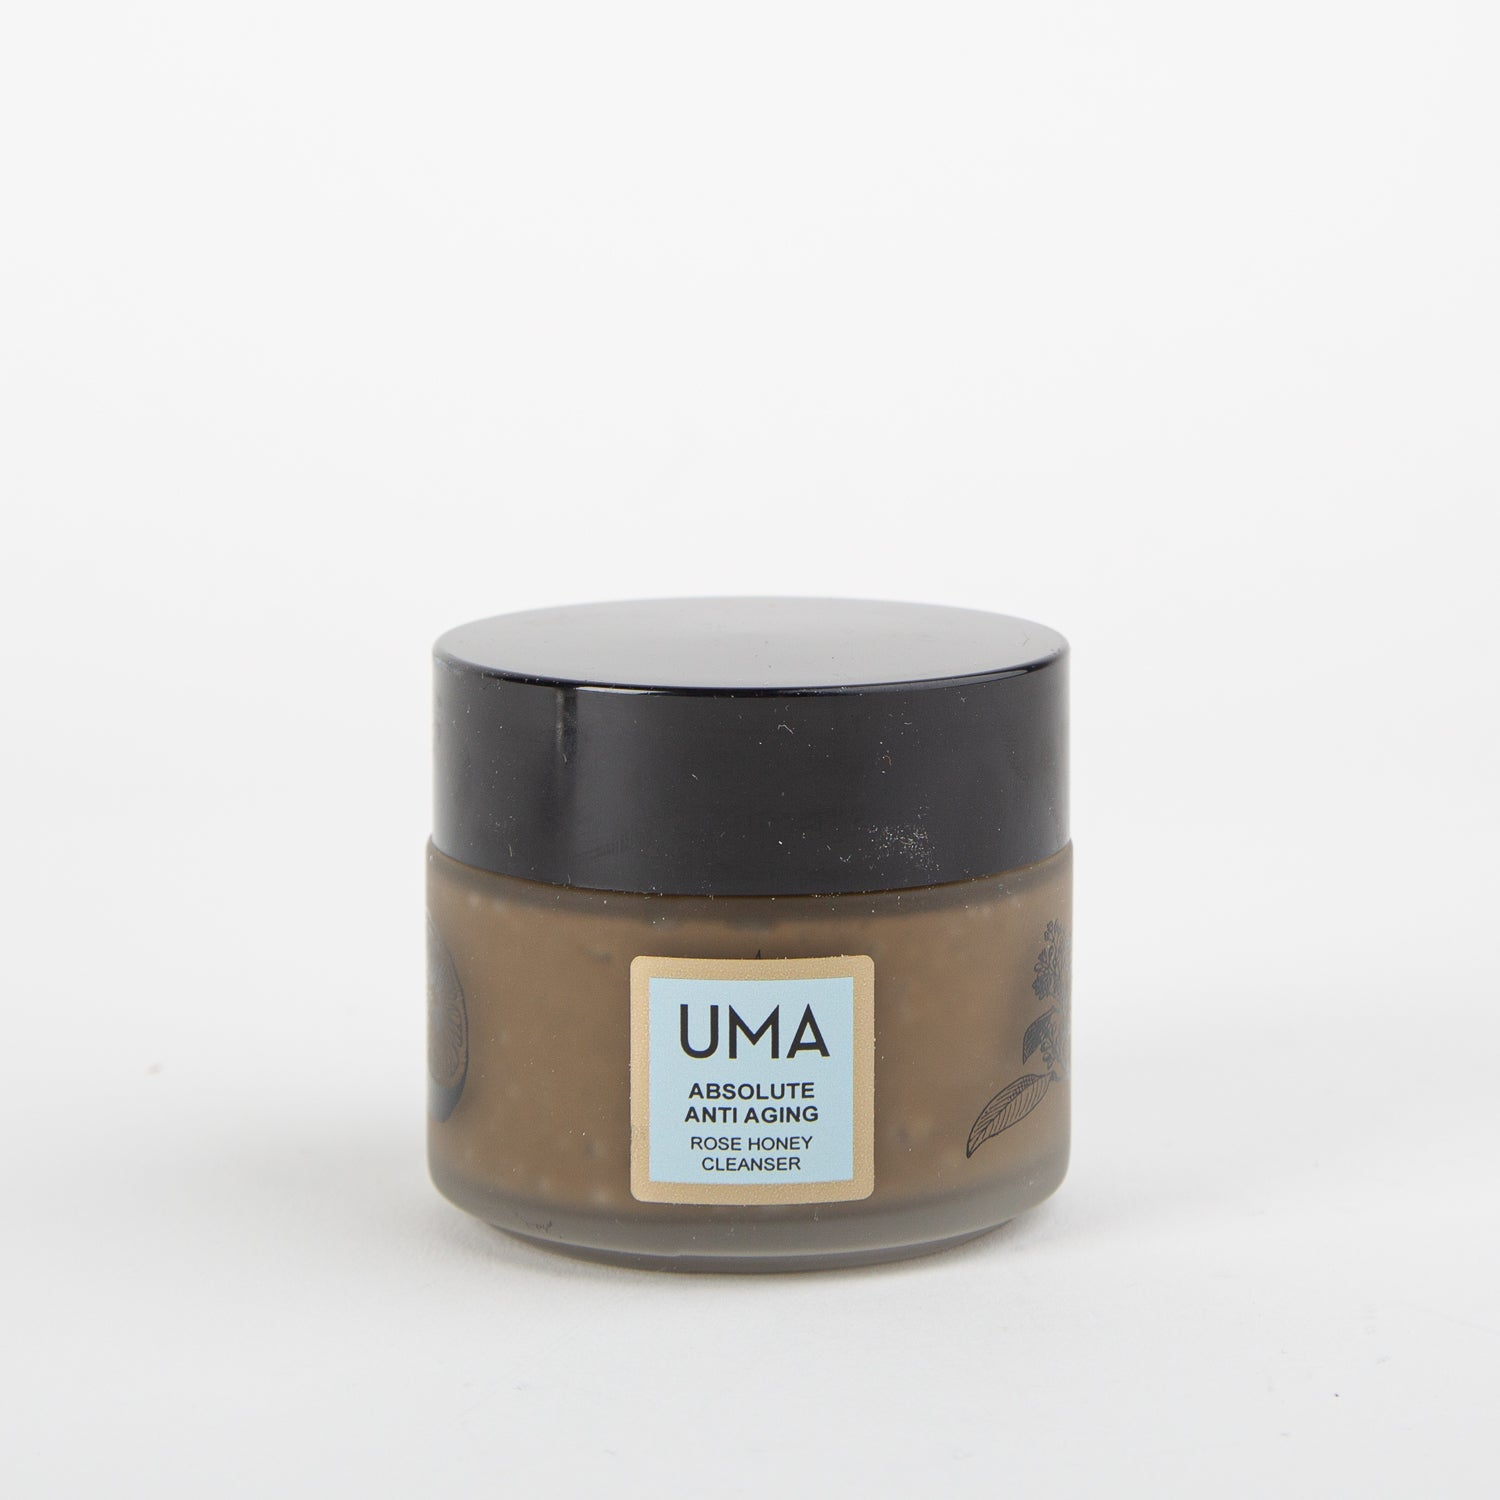 absolute anti aging rose honey cleanser by UMA at Secret Location Concept Store